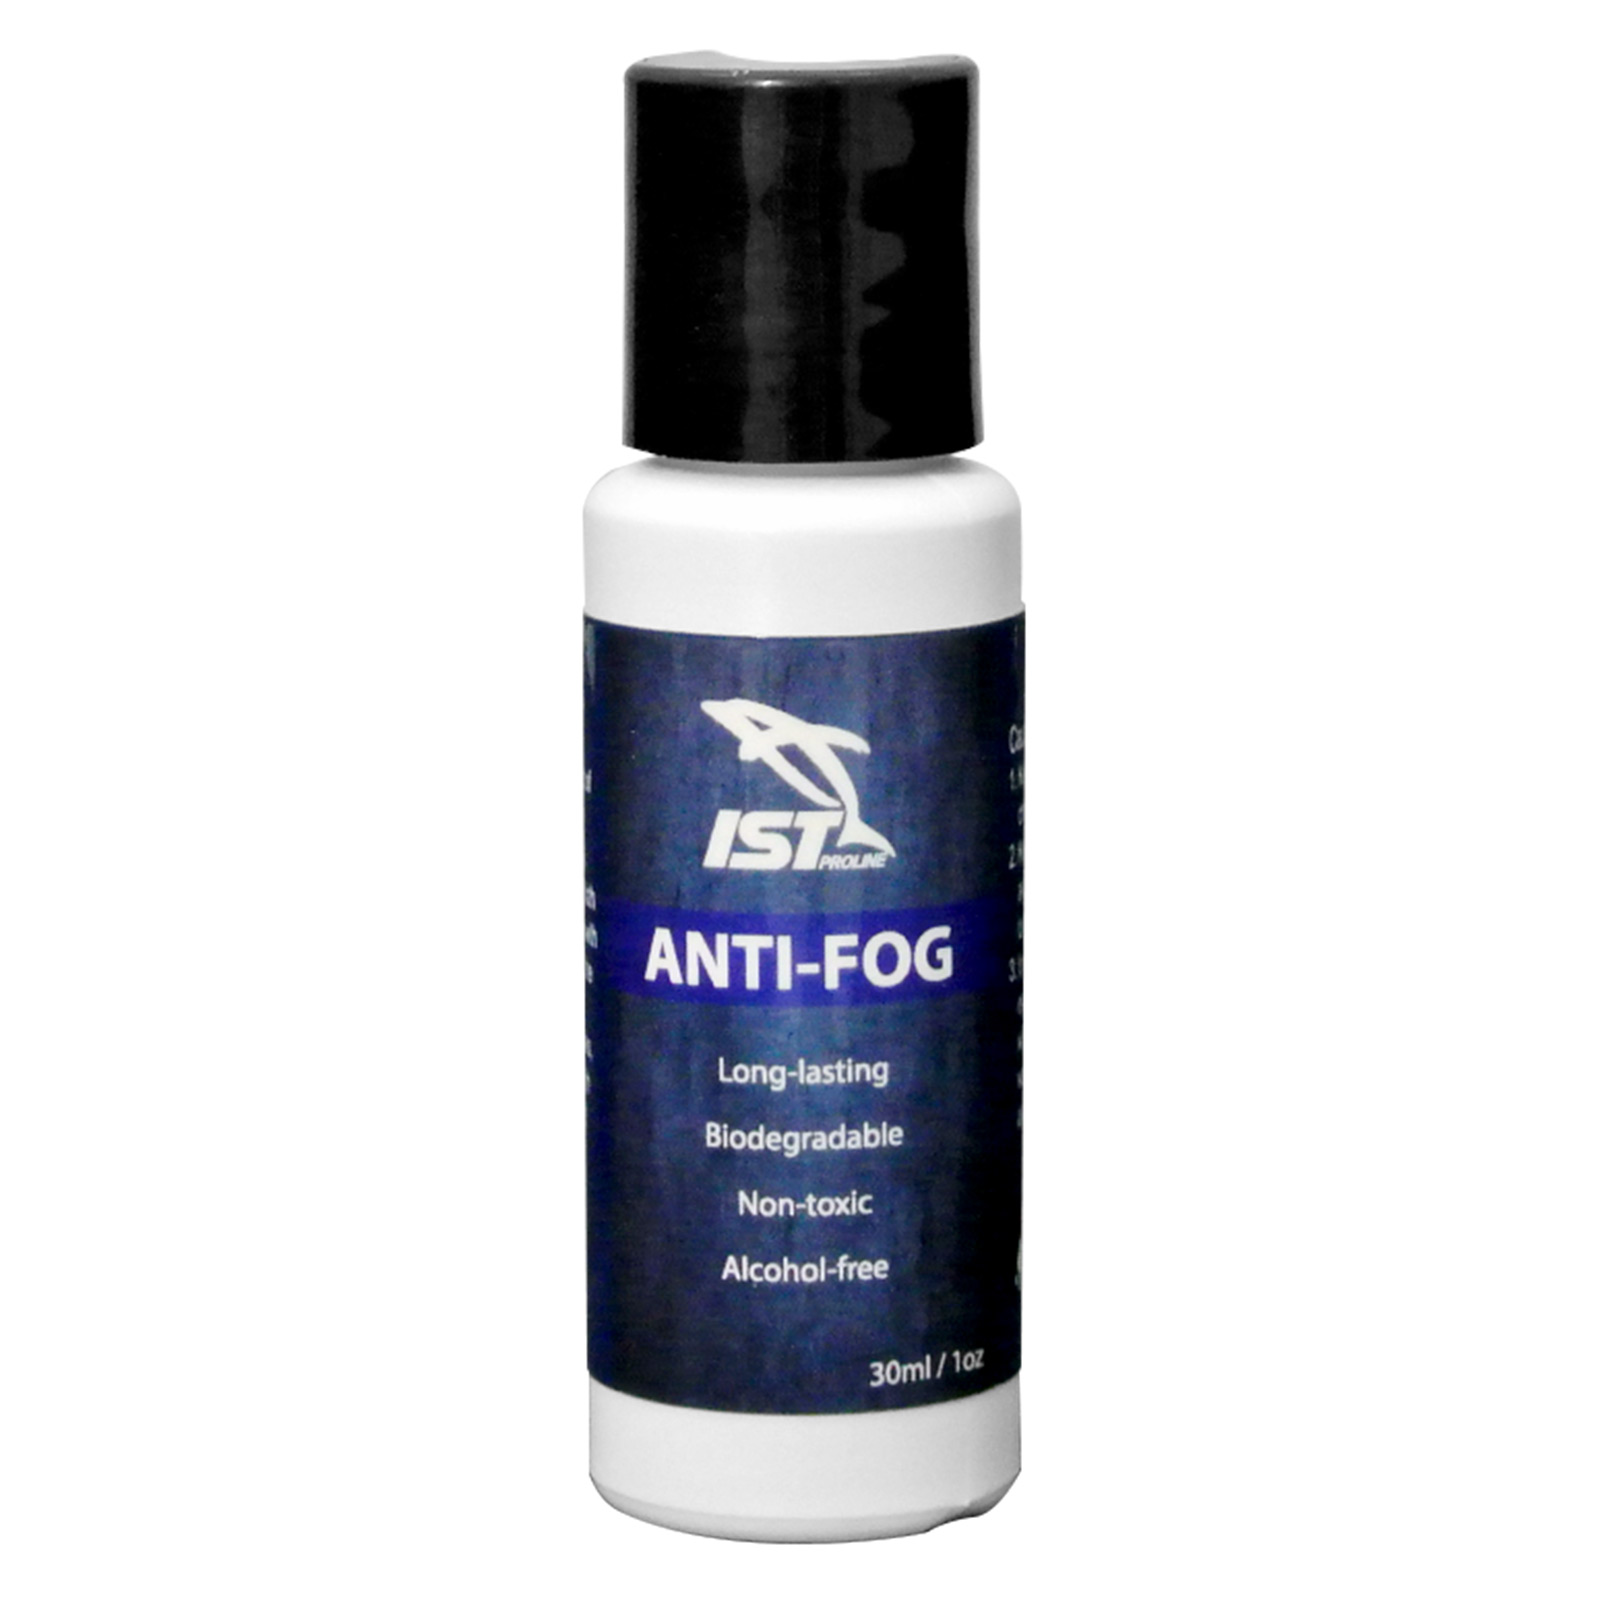 ANTI-FOG GEL